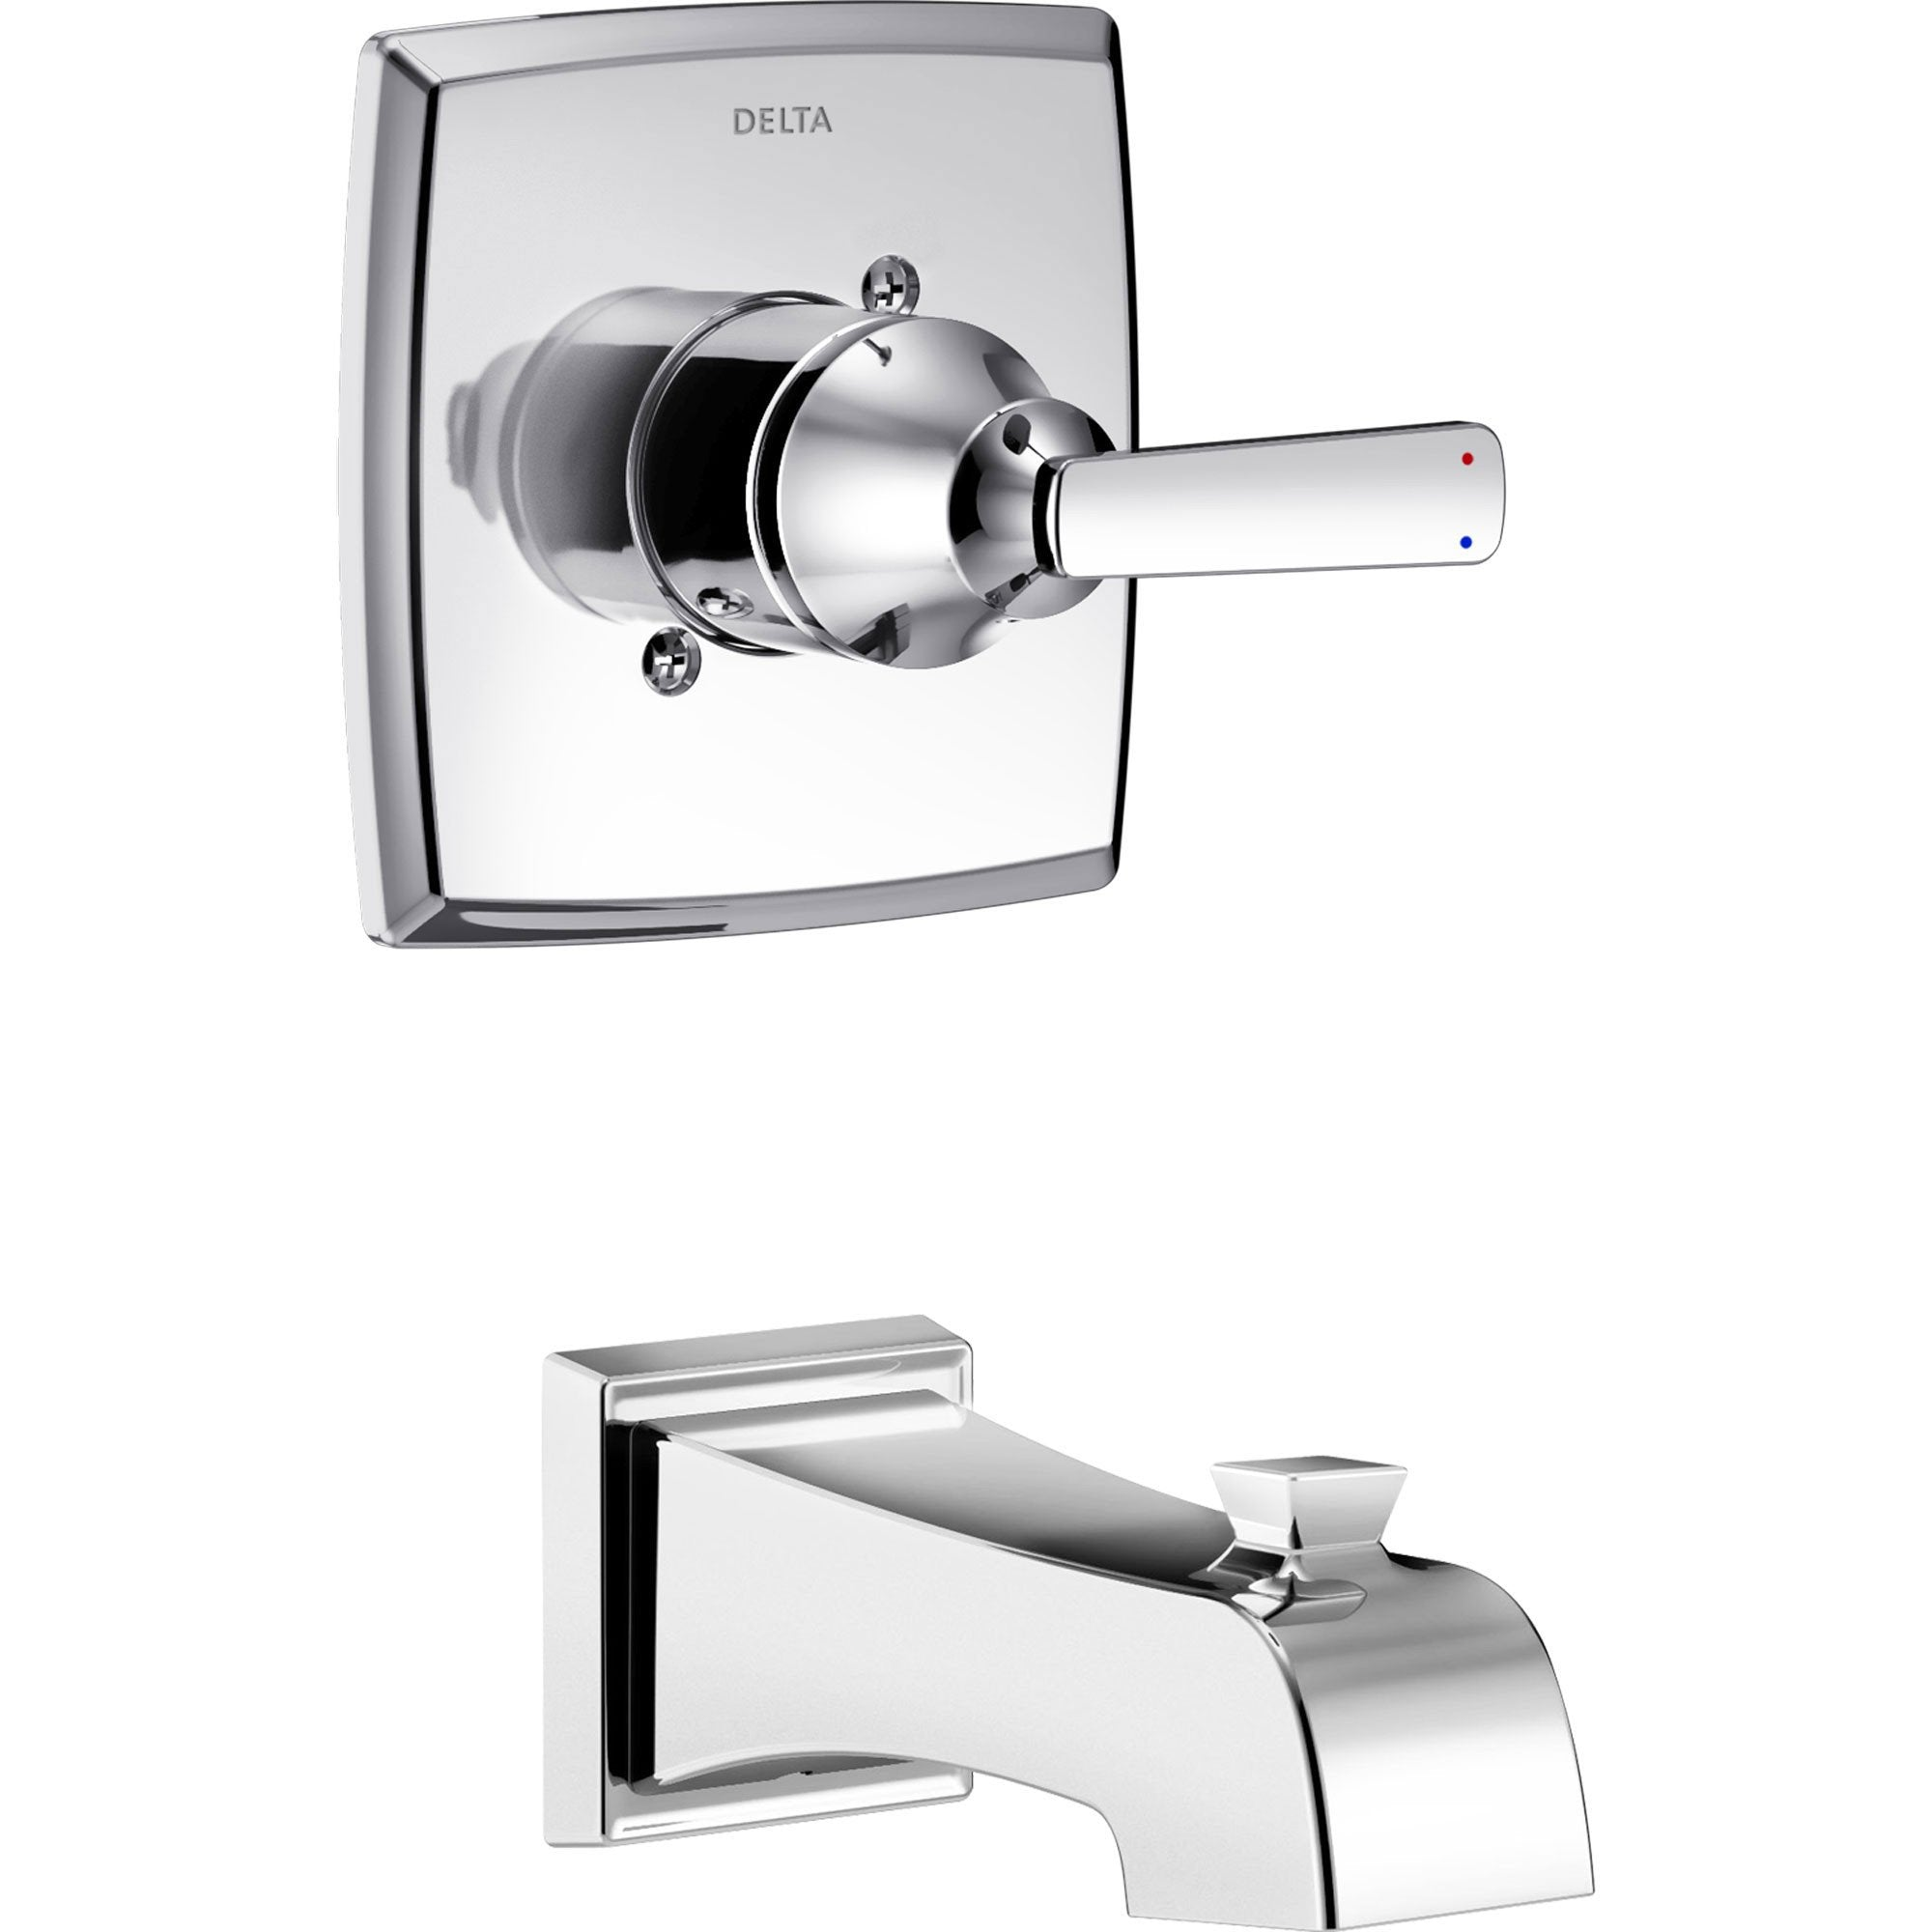 Delta Ashlyn Modern 14 Series Chrome Finish Single Handle Wall Mounted Tub Only Faucet INCLUDES Rough-in Valve with Stops D1241V